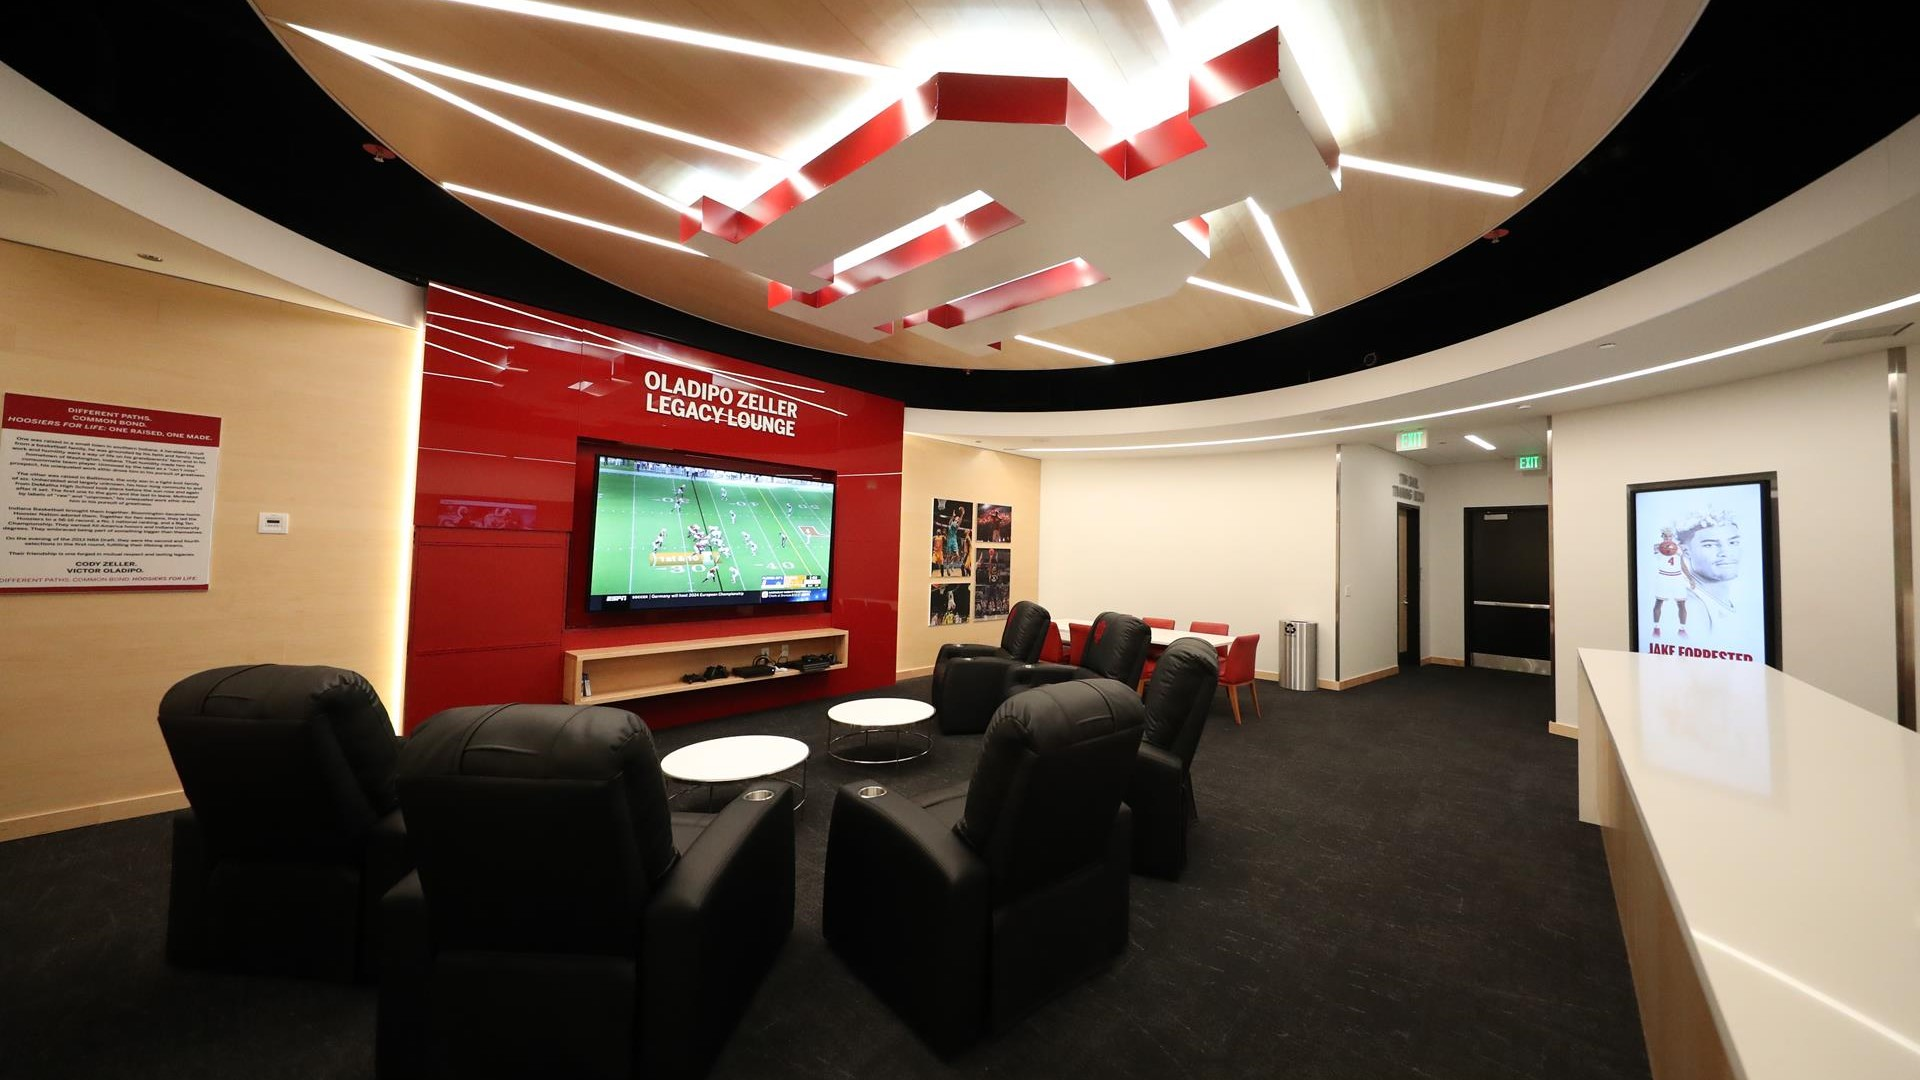 huge discount 8eeca 6fa4e Victor Oladipo and Cody Zeller Make Major Gifts to Indiana Basketball   Oladipo Zeller Legacy Lounge Named In Their Honor